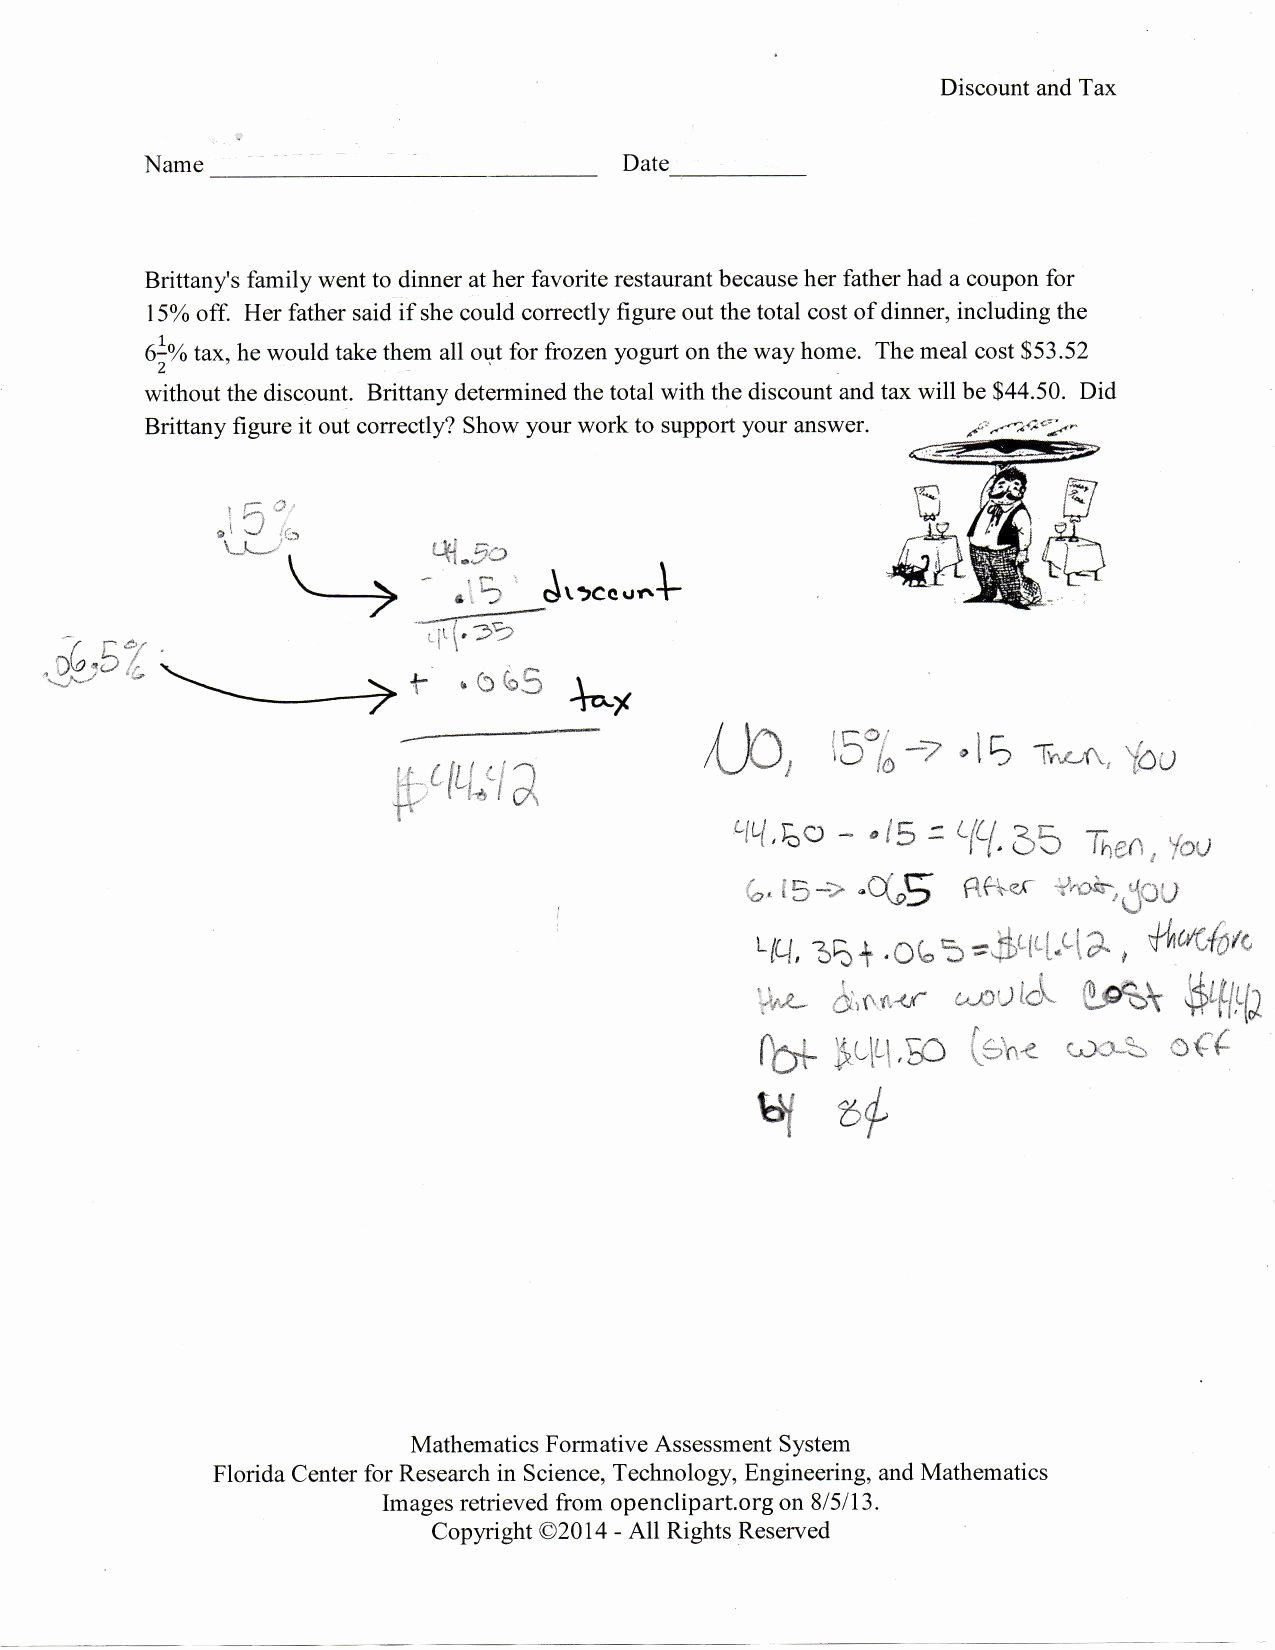 Conservation Of Energy Worksheet Awesome Physical Science Worksheet Conservation Energy 2 Answer